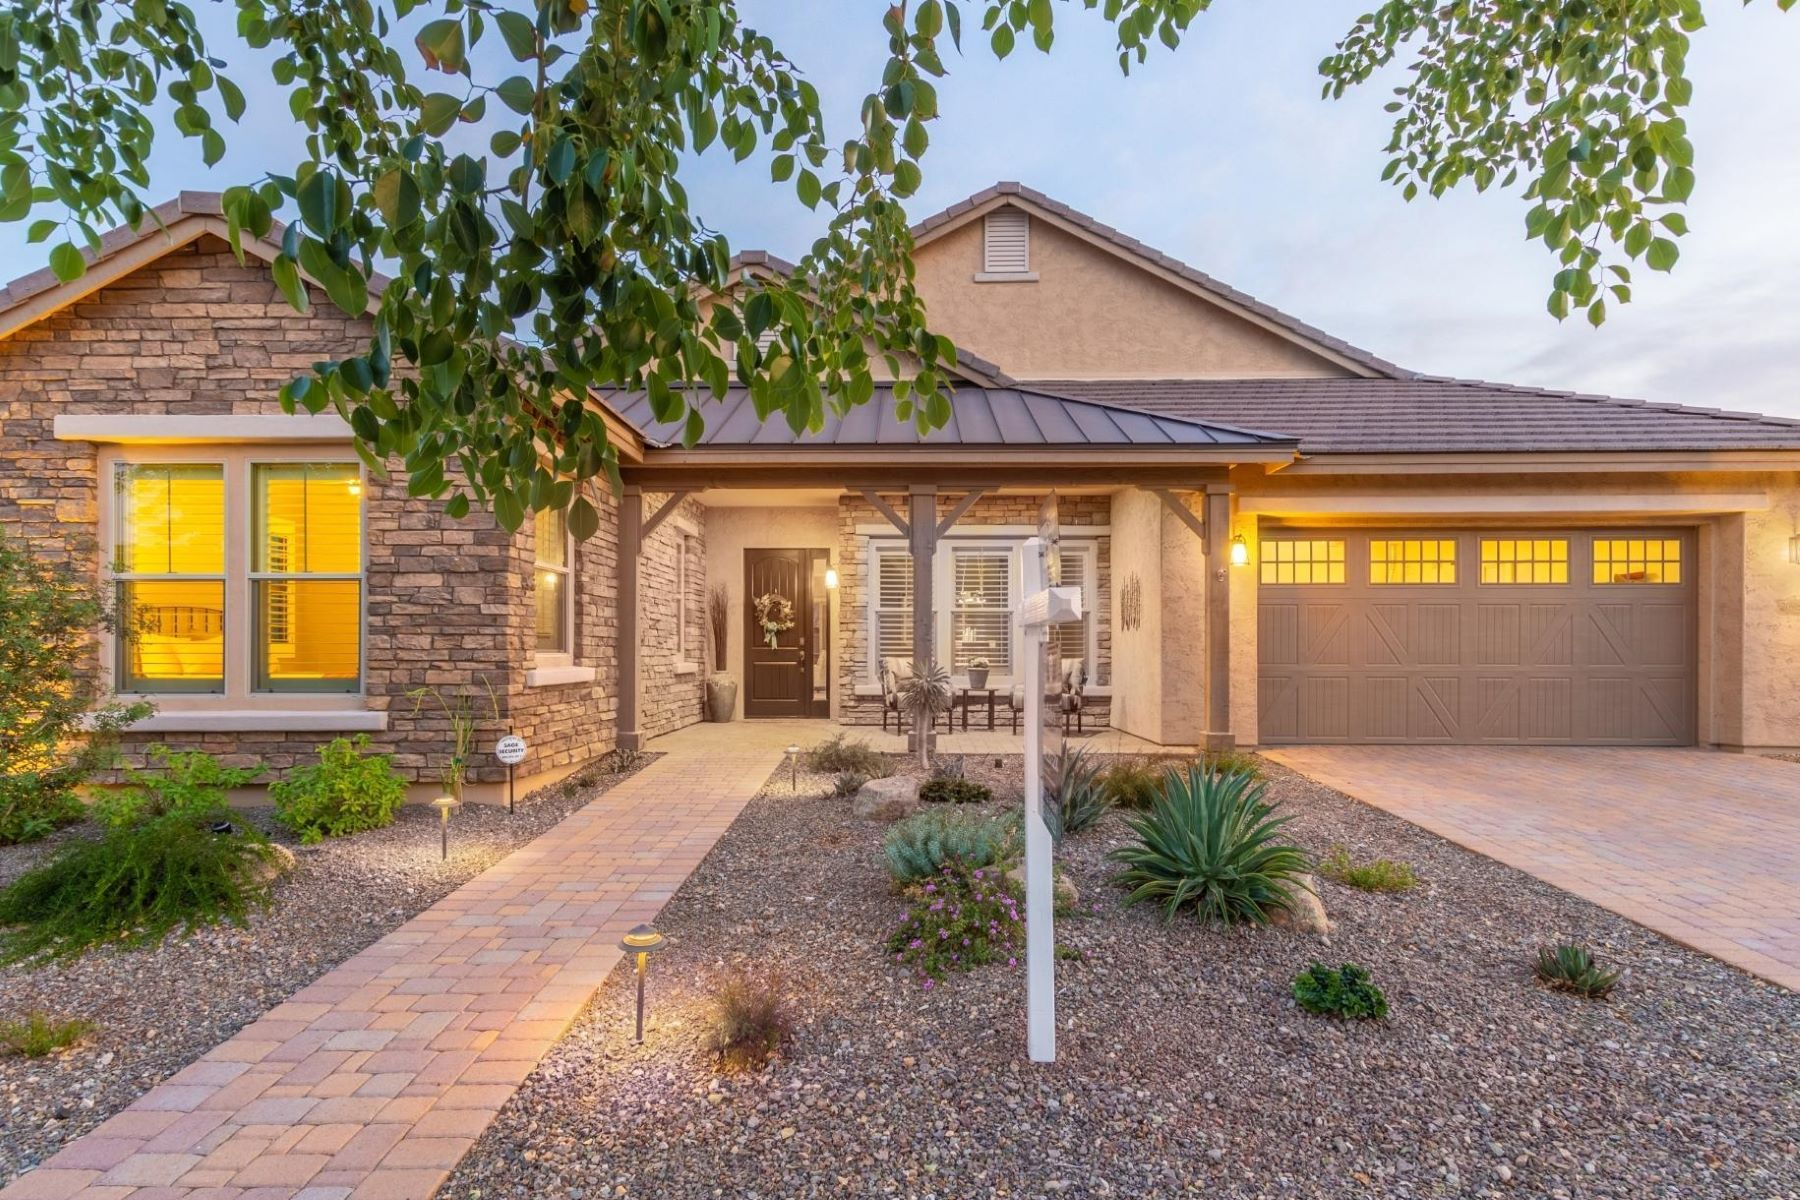 Single Family Homes for Active at Verrado Victory 20987 W Mariposa Street Buckeye, Arizona 85396 United States